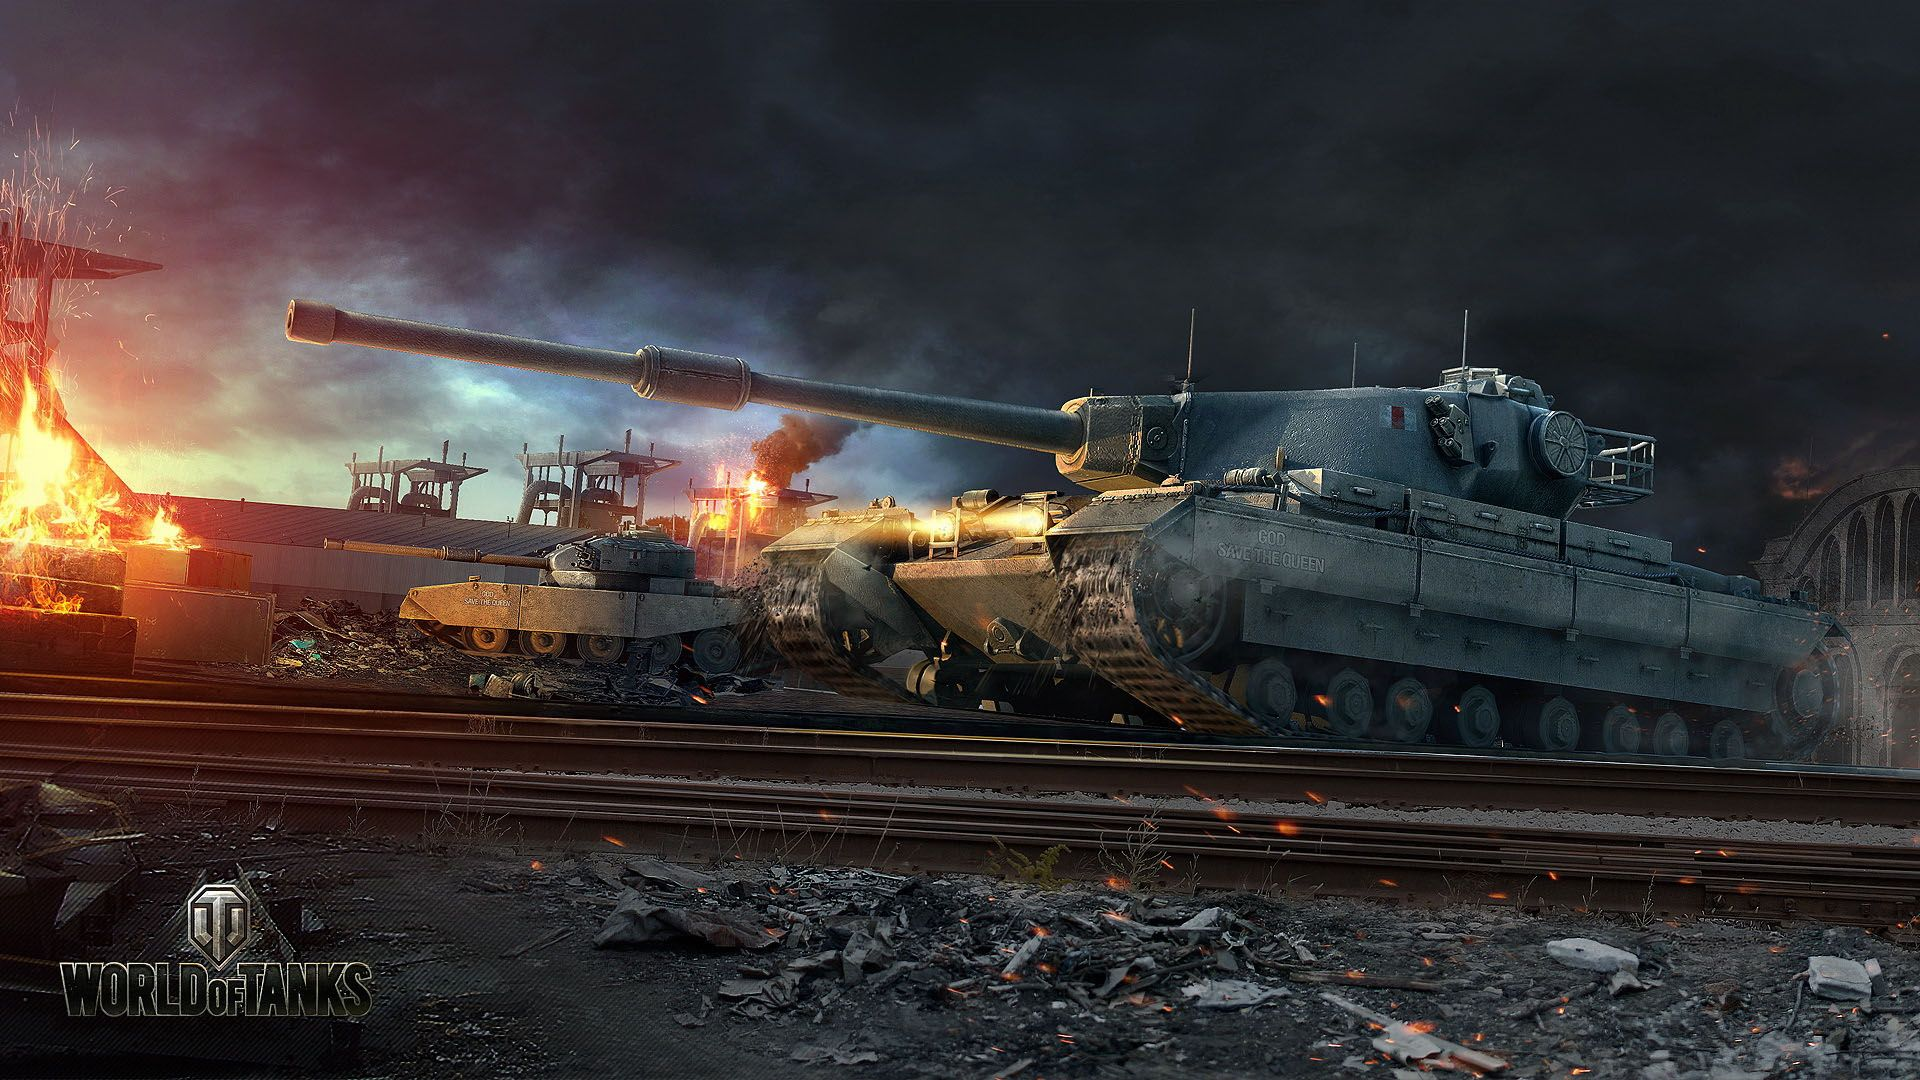 world of tanks wallpaper hd | simplexpict1st